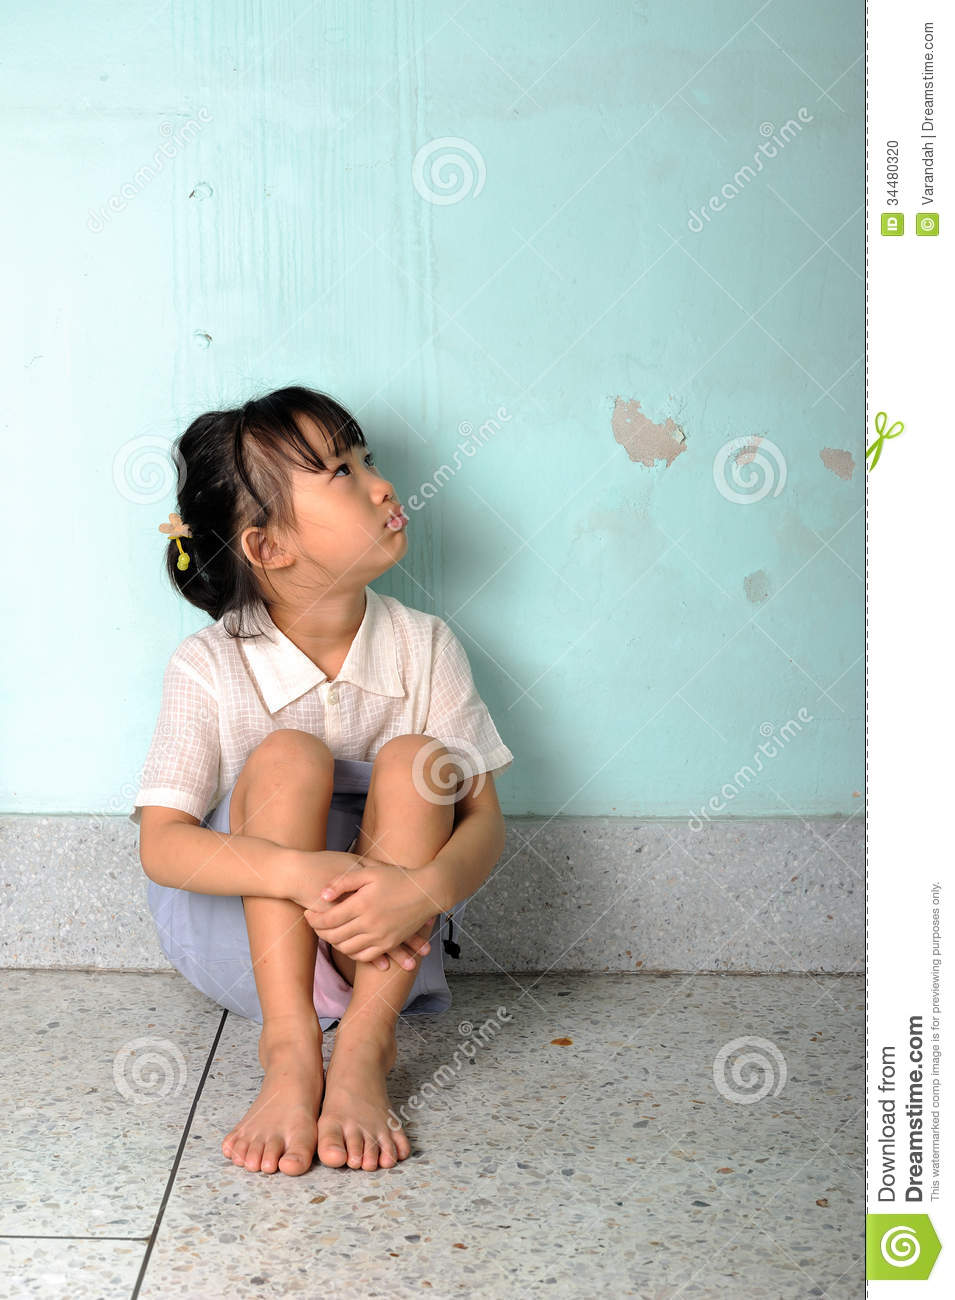 Sad Girl Sitting Alone Outside Stock Photos Sad Girl: Sad And Depressed Little Girl Sitting Near The Wall Stock